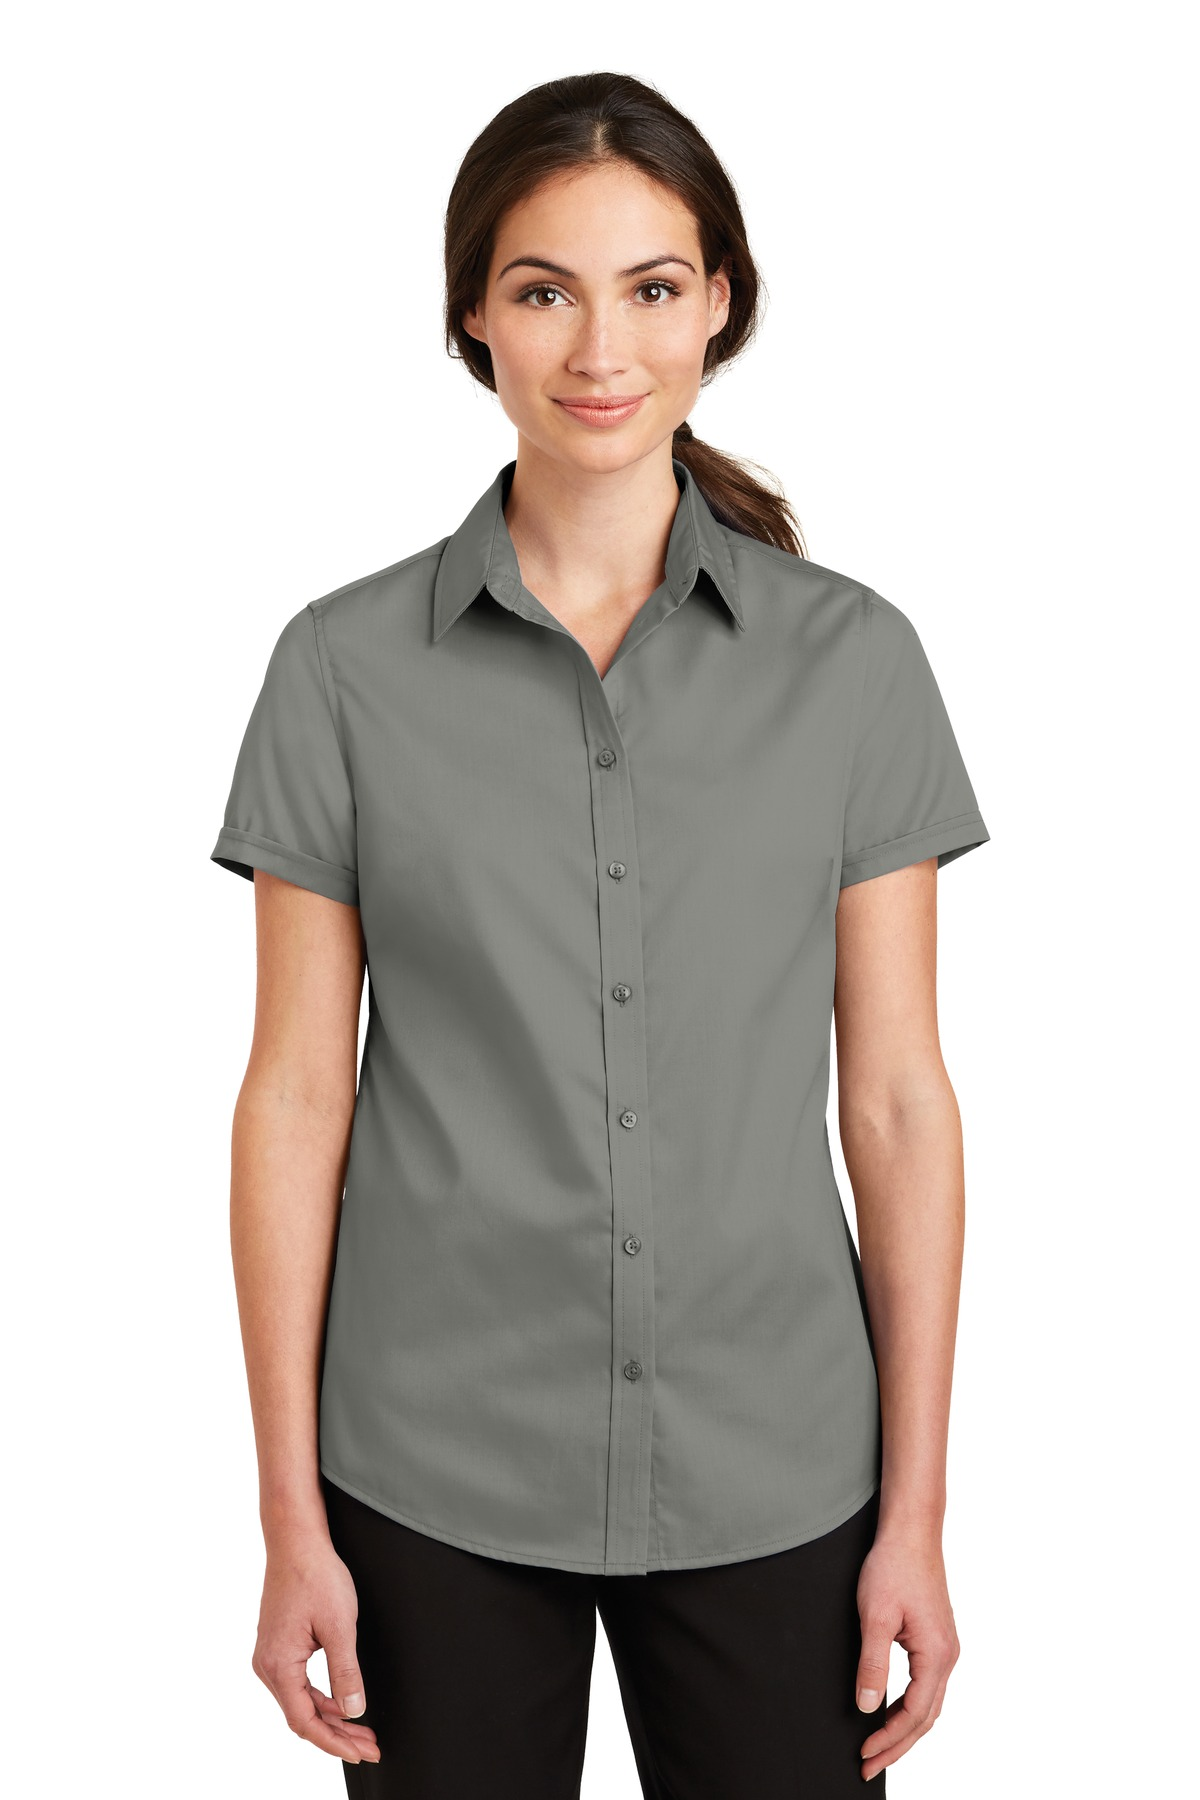 Port Authority ®  Ladies Short Sleeve SuperPro ™  Twill Shirt. L664 - Monument Grey